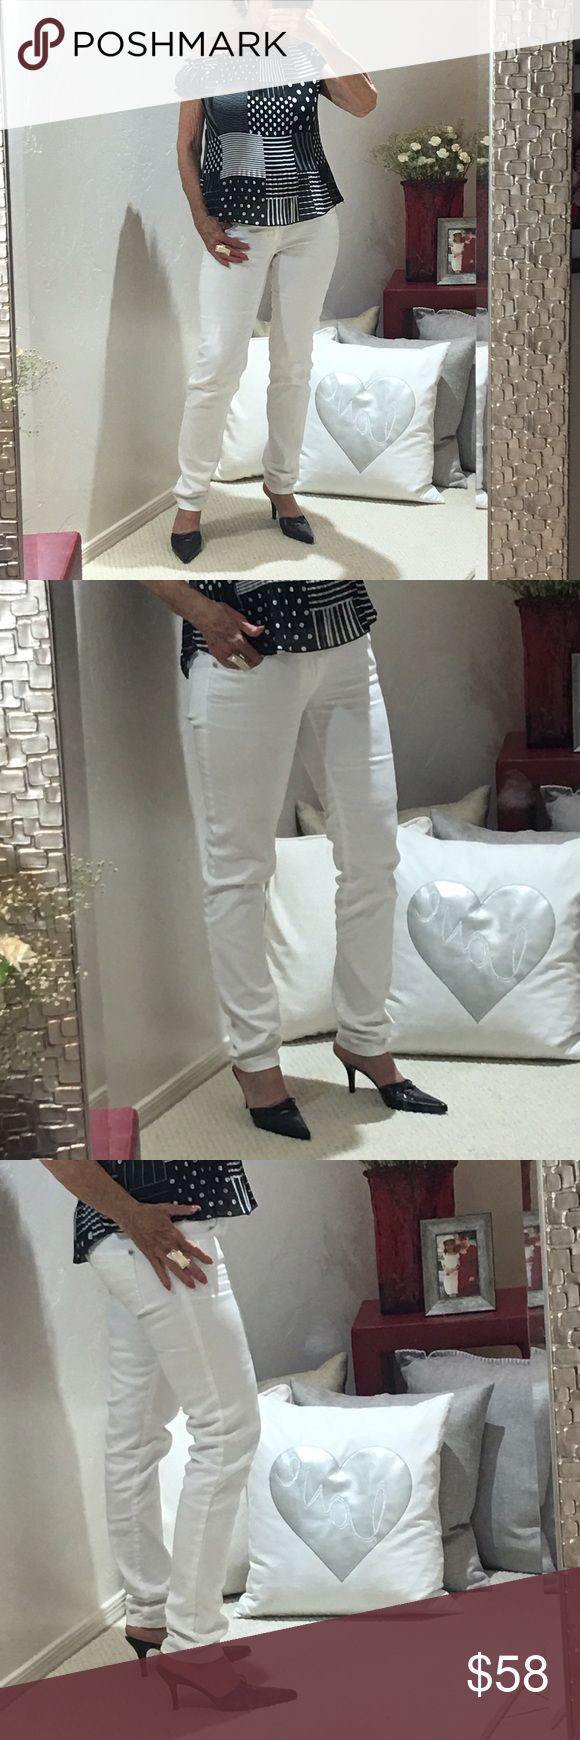 "FLASH🚨SALE🚨 I am selling the most fabulous pair of white skinny jeans that is always a flattering sexy and classic color/style.  These are also perfect for those spring and summer days ahead. Pair with this black and white pheasant blouse and take your style to another level of fantastic...your girlfriends will all be so jealous and of course you have just created the WOW factor.. excellent condition size 6 inseam 30"" Arden B Tops Blouses"